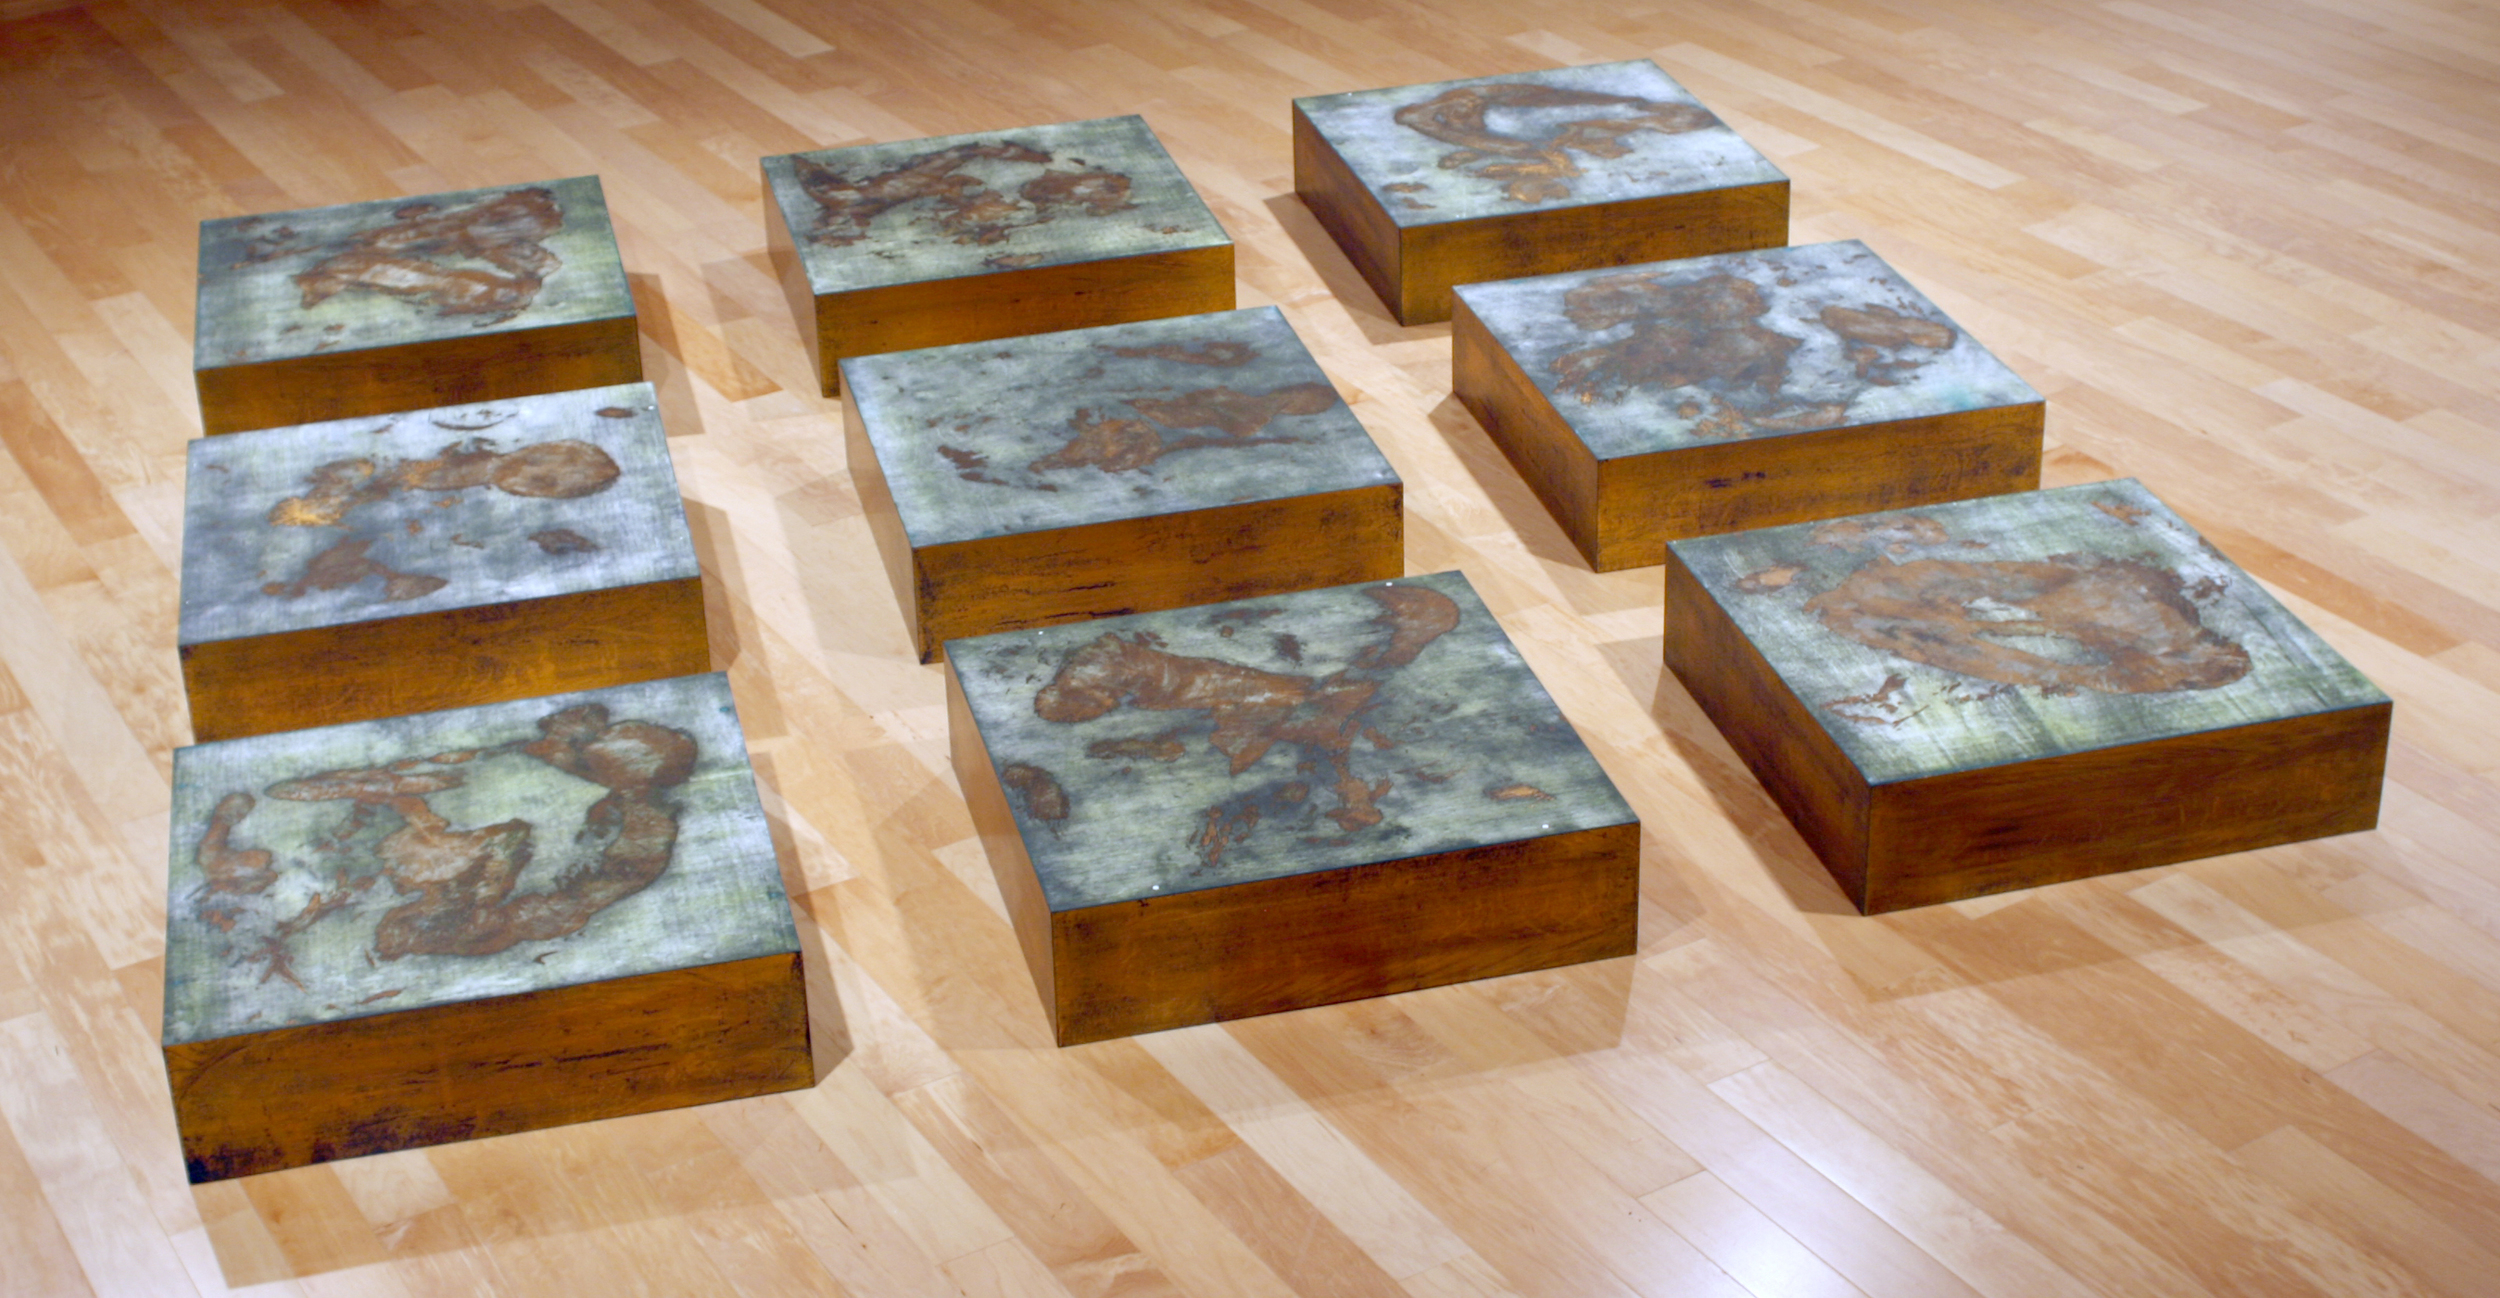 """Foundation   woodcut printed images on paper, mounted on constructed boxes, to be installed in a 3 x 3 grid arrangement with approximately 12""""spacing. ink, paper, metallic foil, wood 29"""" x 29"""" x 7 ½""""   (each unit) 110"""" x 110"""" x 7 ½""""   (9 units installed) 2008   A Statement on  Foundation     Nine identical square wooden boxes are laid out in a precise three by three square on the gallery floor.   Such systematic ordering of forms might reference minimalism, were it not for the fact that the surface of each box exudes the earth-mellow glow of copper and the bluish-green of malachite, copper's mate in earth's geology.   The severe geometry of the squares-within-squares is tempered, if not contradicted, by the randomness of the malachite-hued shapes that seem to float like islands on a copper sea.   The entire work is a play with complementarities of opposites and their transcendence: geometric regularity – culture in classical tradition – verses organic line – nature; copper's warm color and malachite's cool hue; land and water, male and female; the corporeal bulk of the boxes and the lyrically light markings of the paper prints which they support.   Hager obtained the accidental shapes by literally rolling male as well as female nude models smeared with paint inside a large wooden box, and the side of the box that carried the body's imprint then became the matrix for the two-color woodcut.   The grain of the wood remains visible and becomes part of the traces left by human presence.   Earth-bound, yet luminous with spirit as light reflections in the metallic colors animate – literally """"giving soul to"""" – the forms.   The sculptor and printmaker Hager has gracefully married his media by taking the print off the wall.   Reinhild Kauenhoven Janzen , Professor of Art History, Washburn University Art Department 2008"""